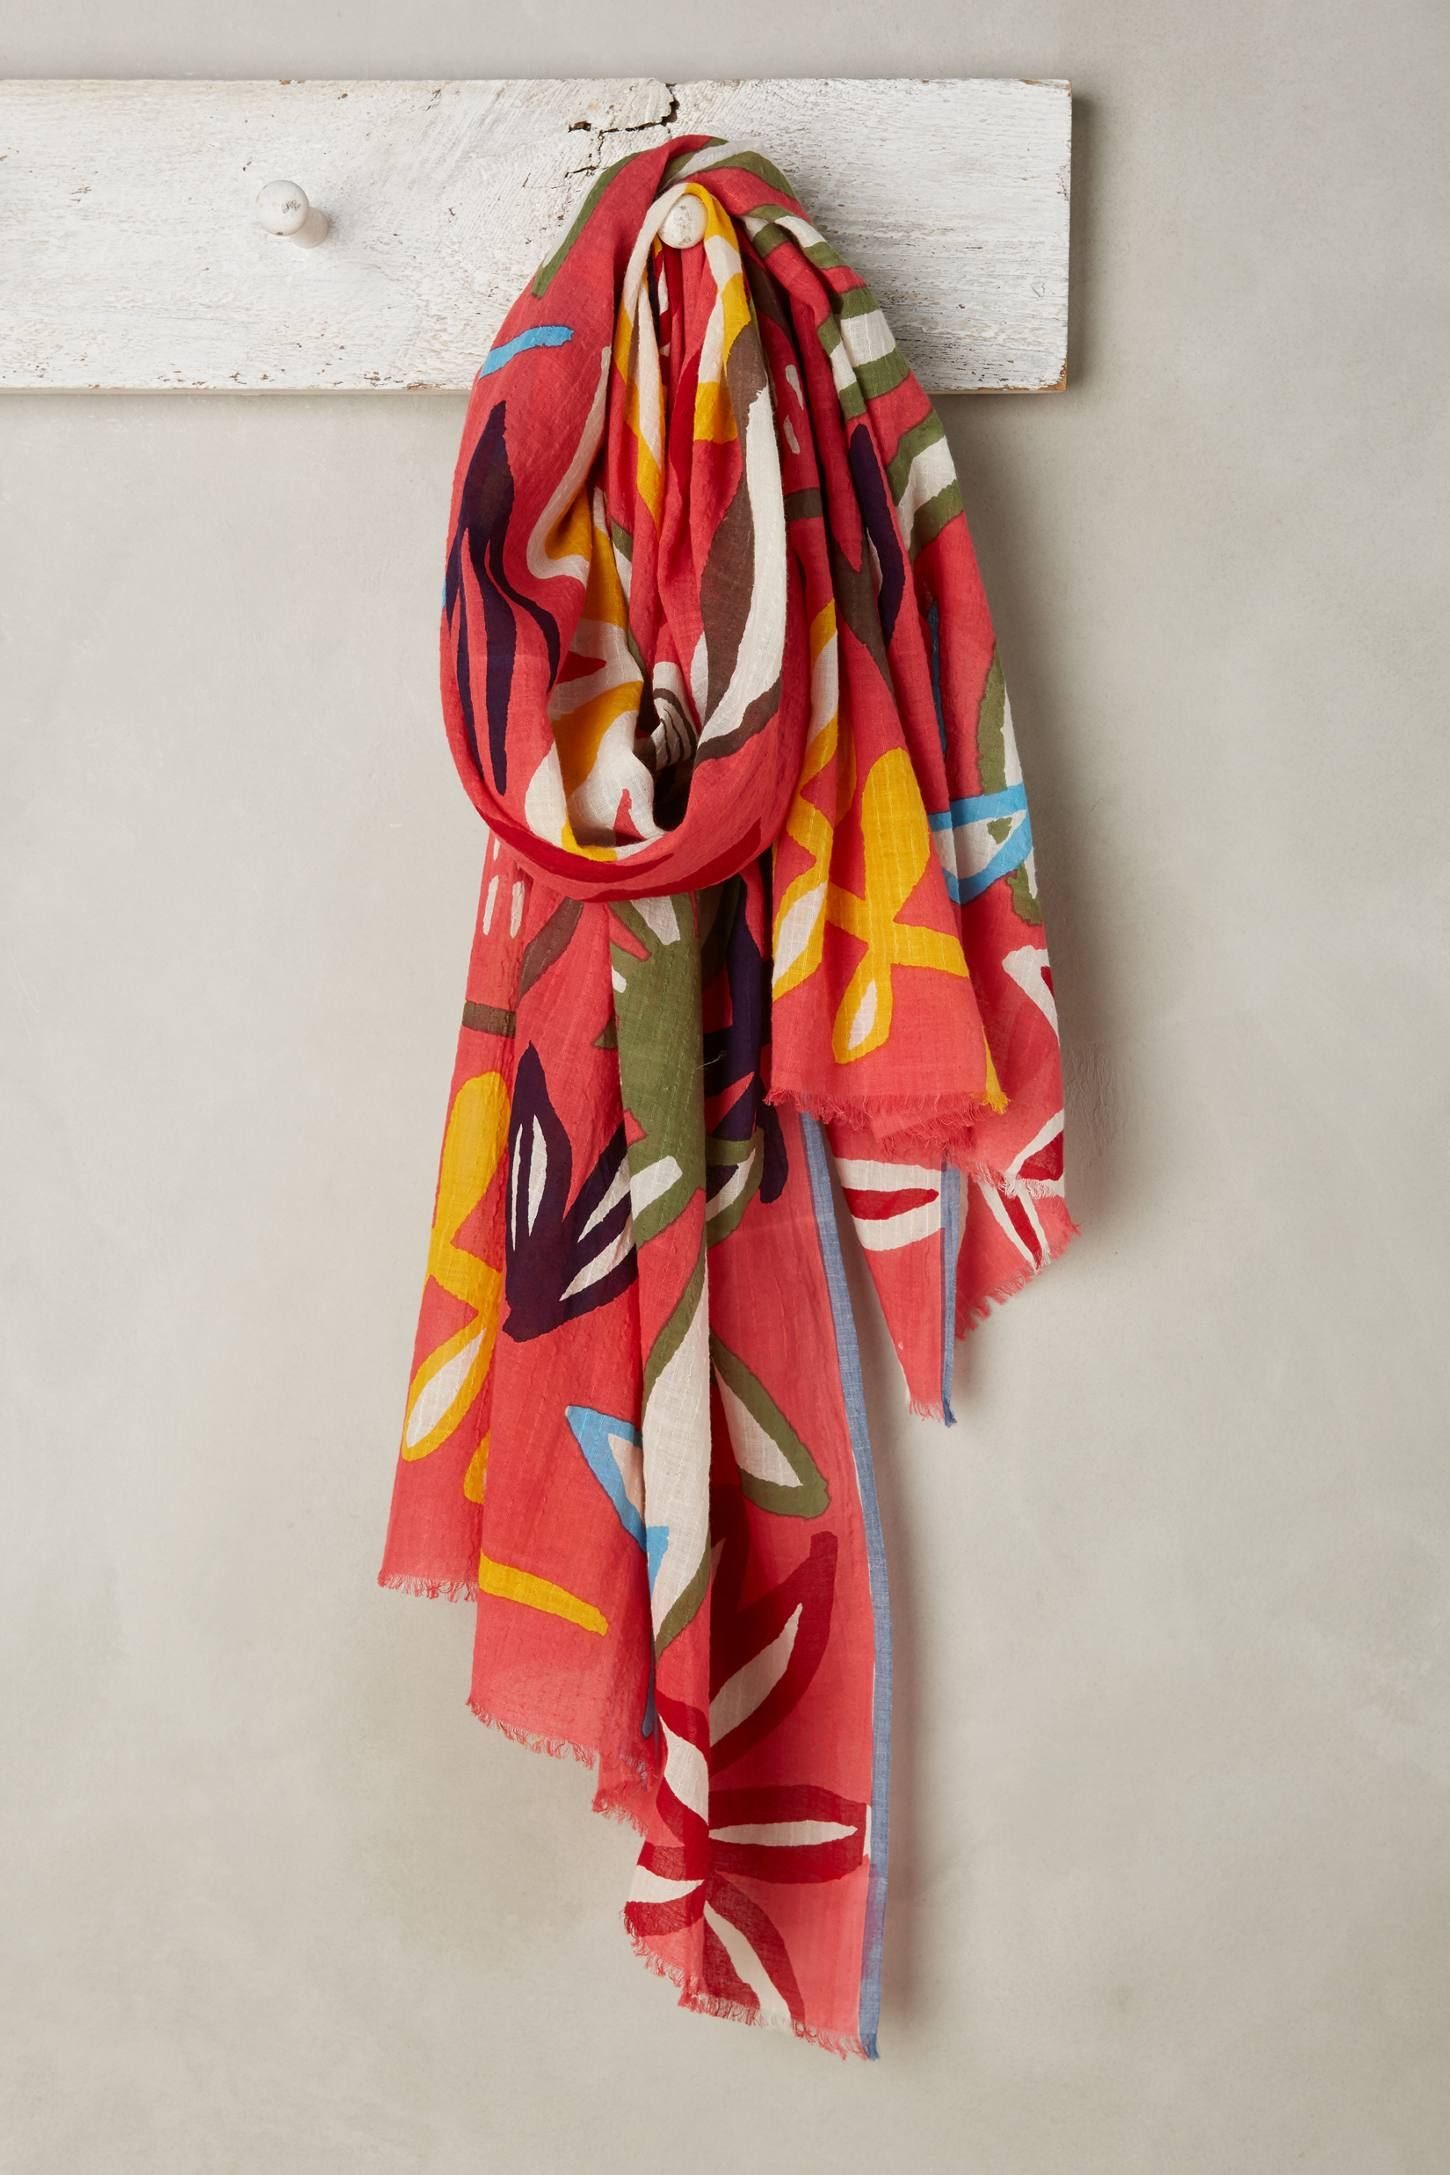 Modal Scarf - Lust Scarf by VIDA VIDA Outlet Brand New Unisex The Best Store To Get Cheap Shop For lkmMatRXZN